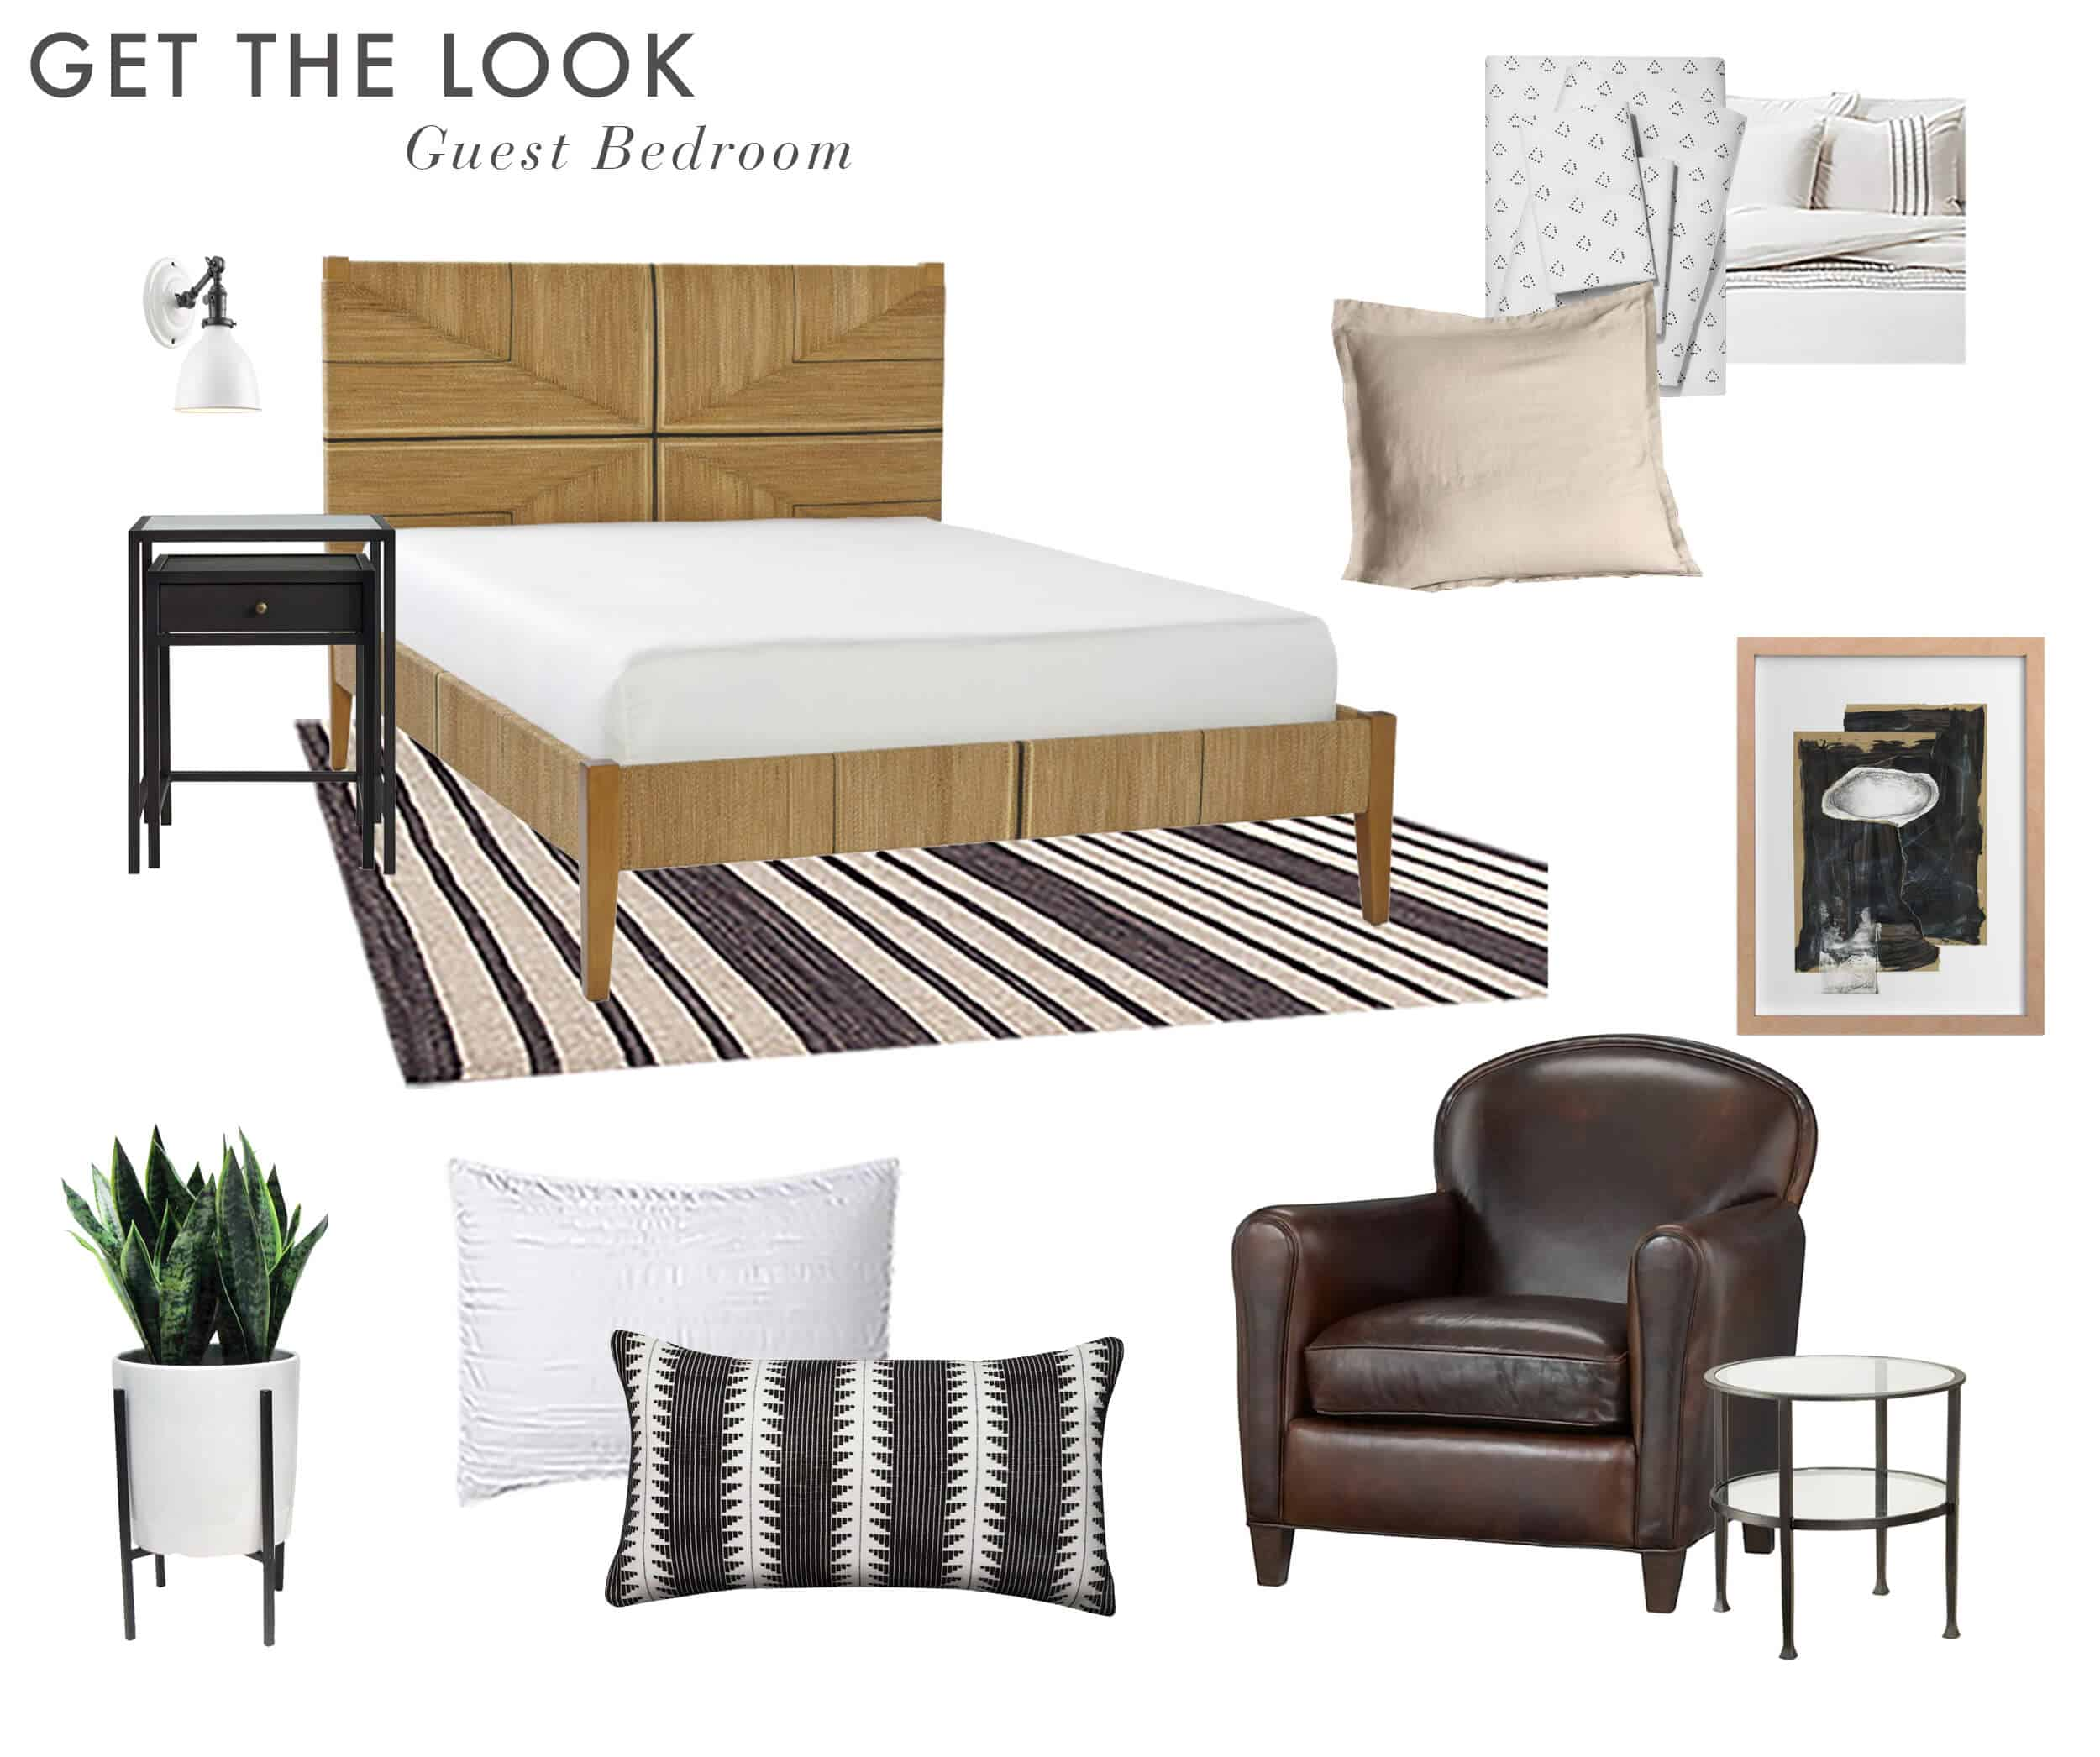 Emily Henderson_Scott Horne_Guest Bedroom_Masculine_Monochromatic_Neutral_Soft_For Sale_Get the Look_2